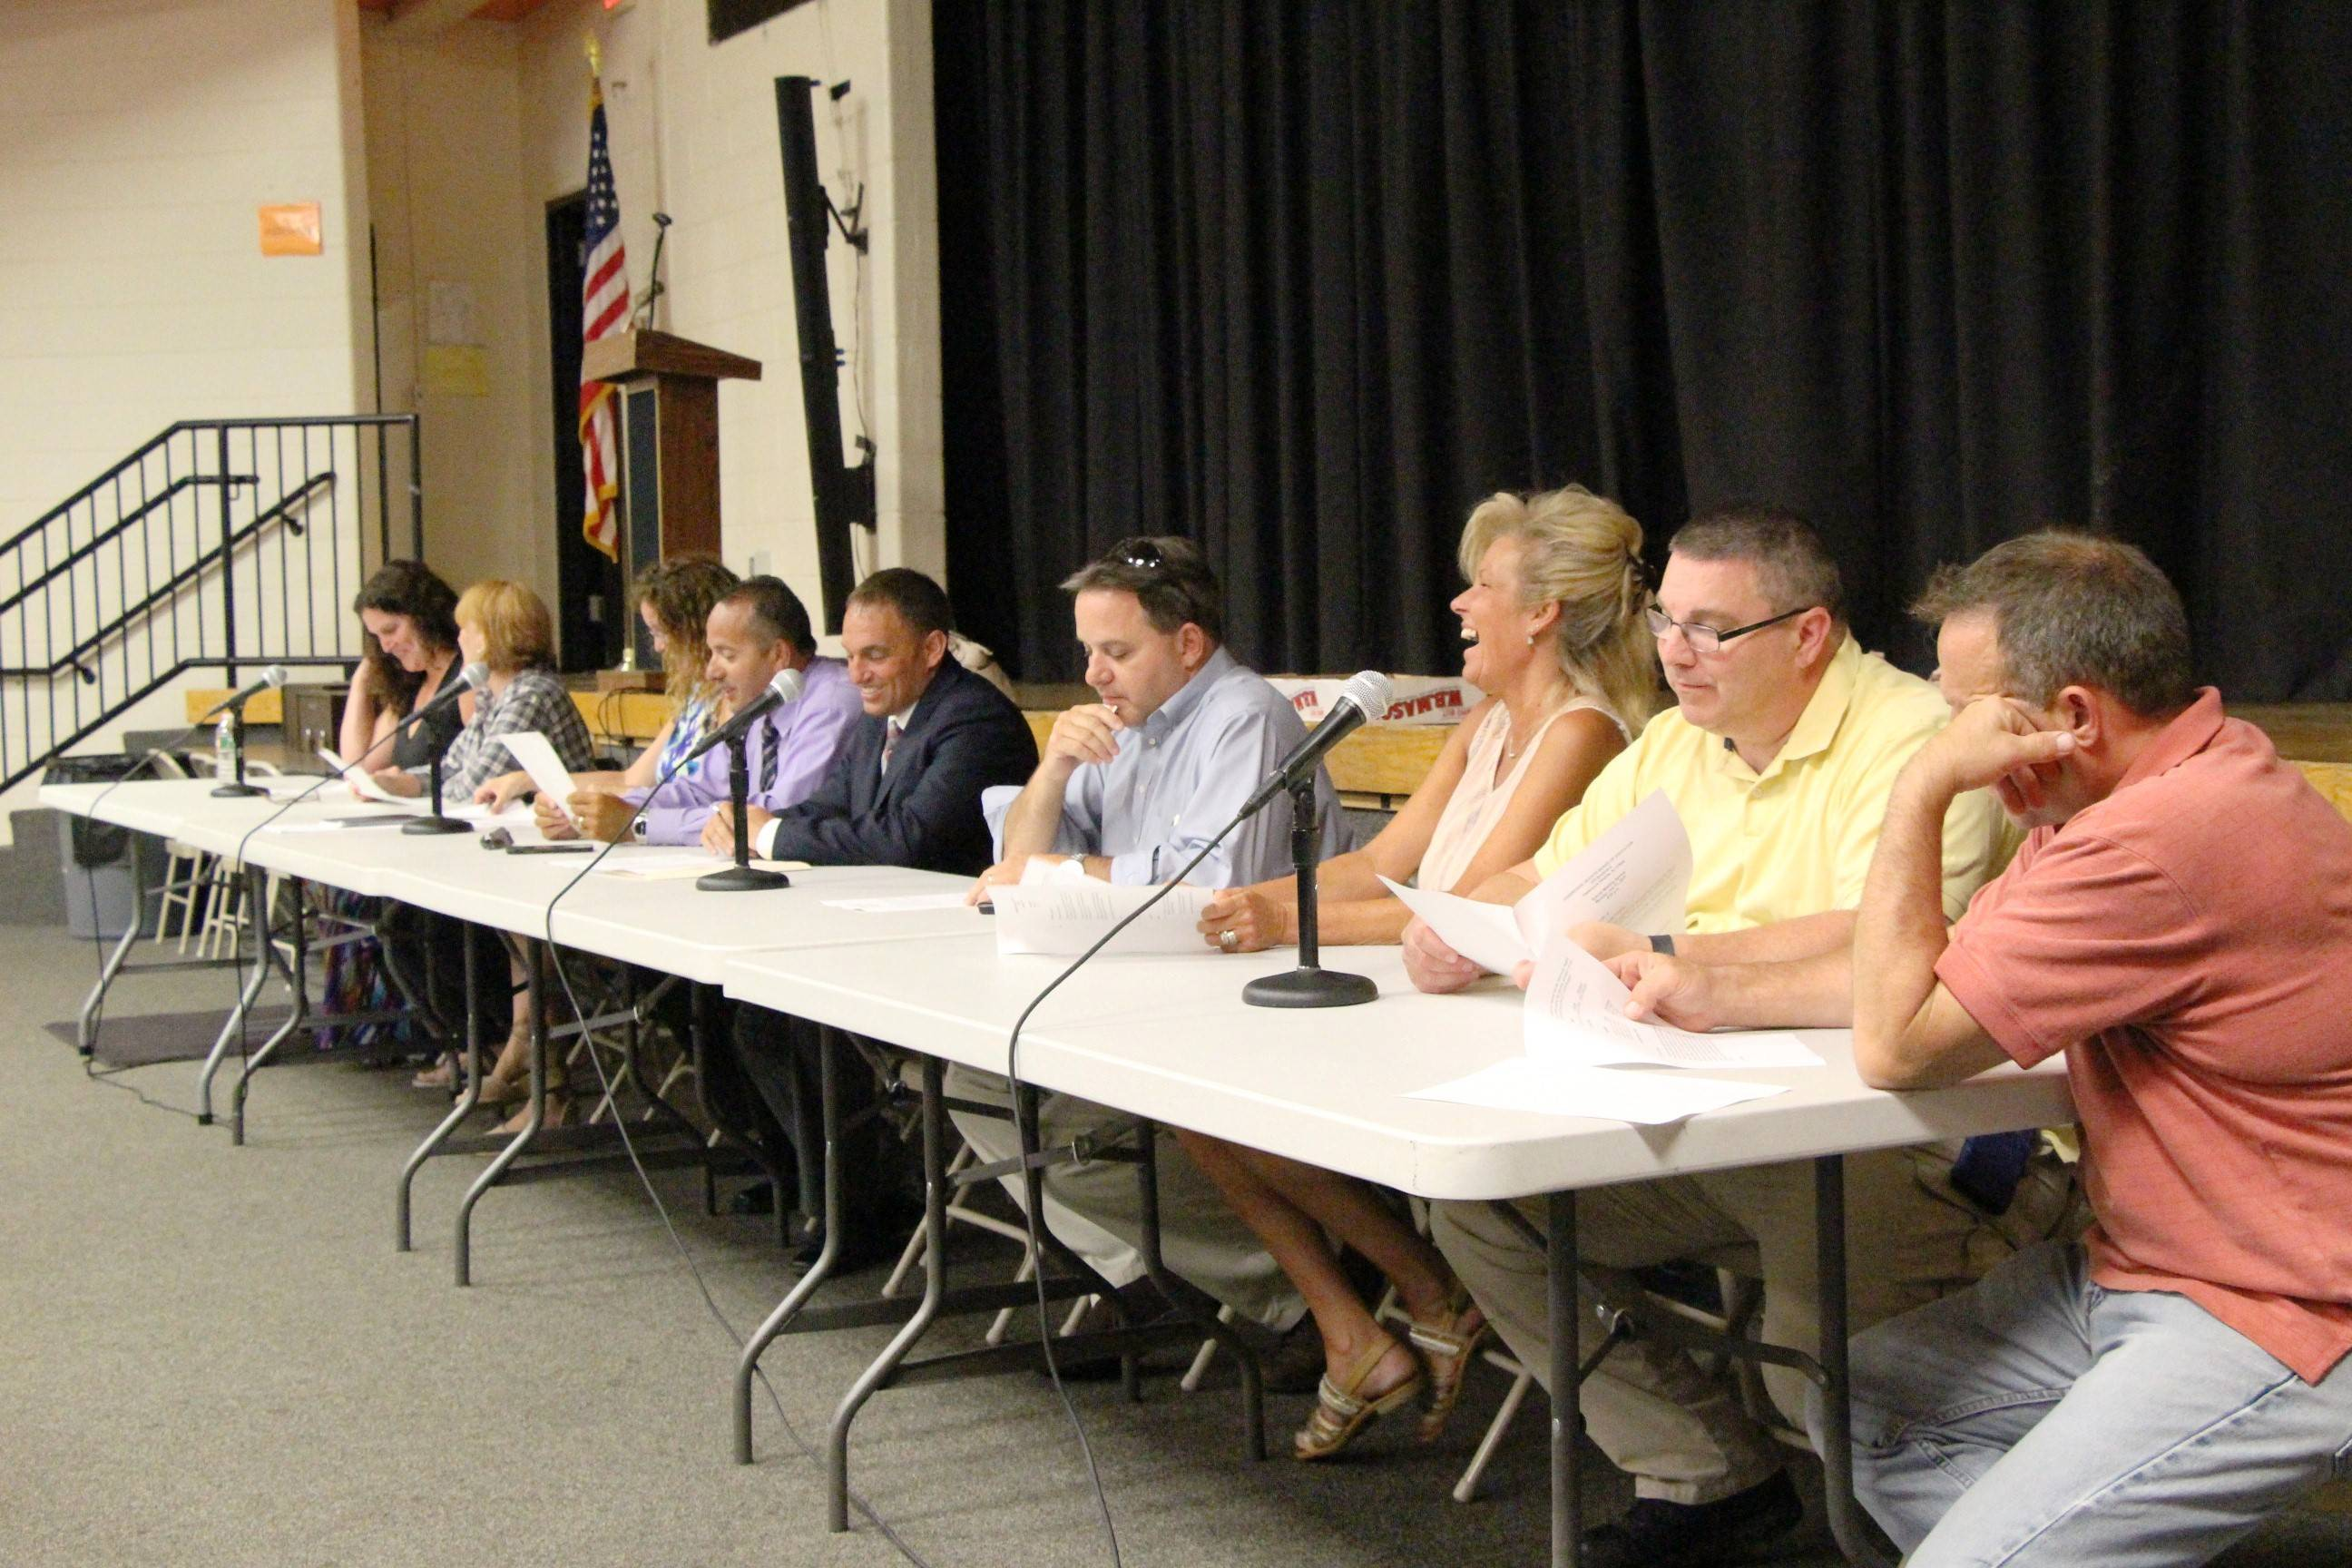 a34d82371f6b7612f5d6_EDIT_July_31_BOE_special_meeting.jpg